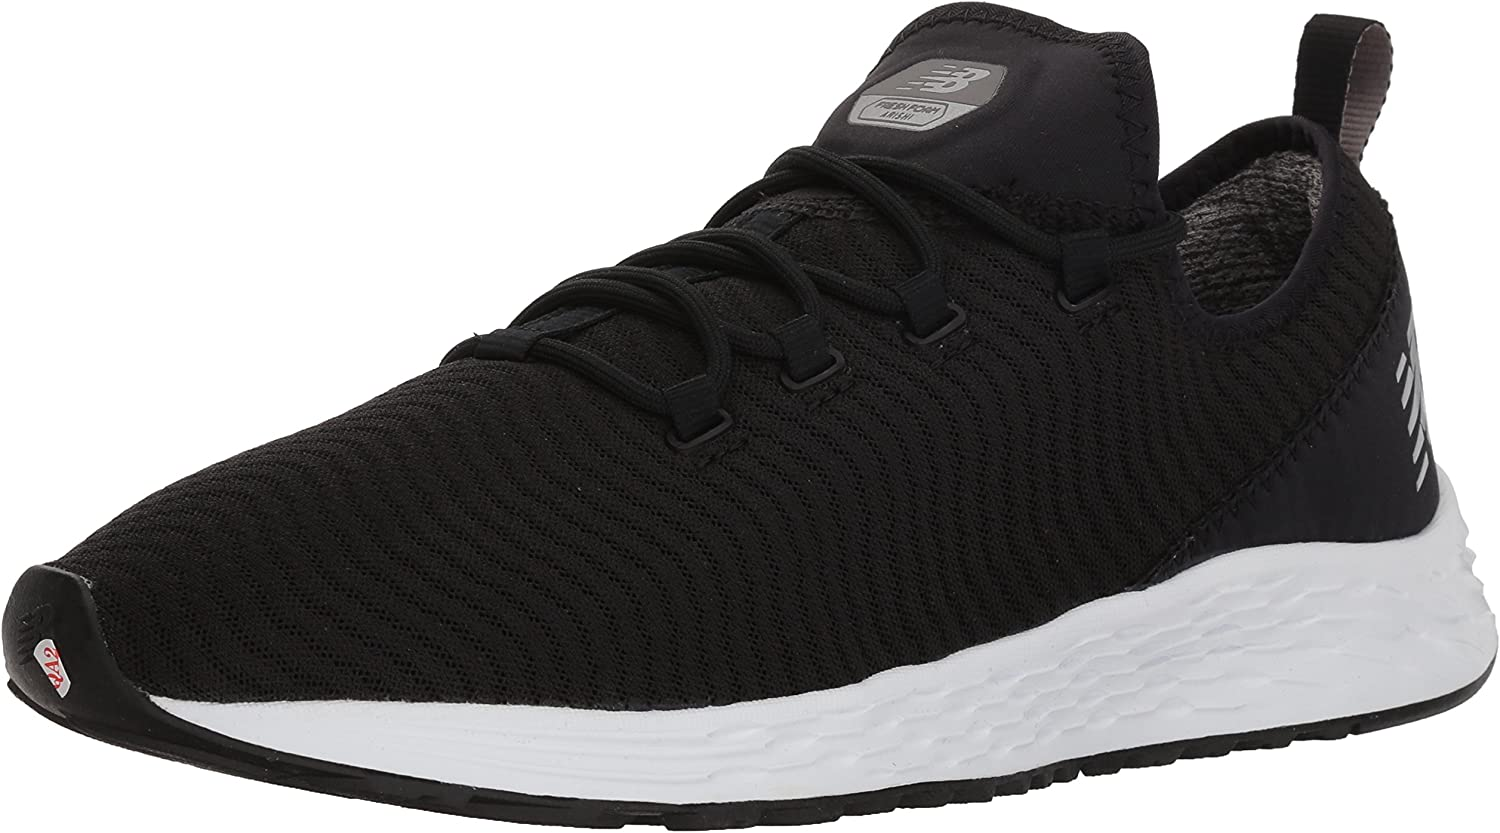 New Balance Men s Arishi v1 Fresh Foam Running Shoe, Black White, 13 D US